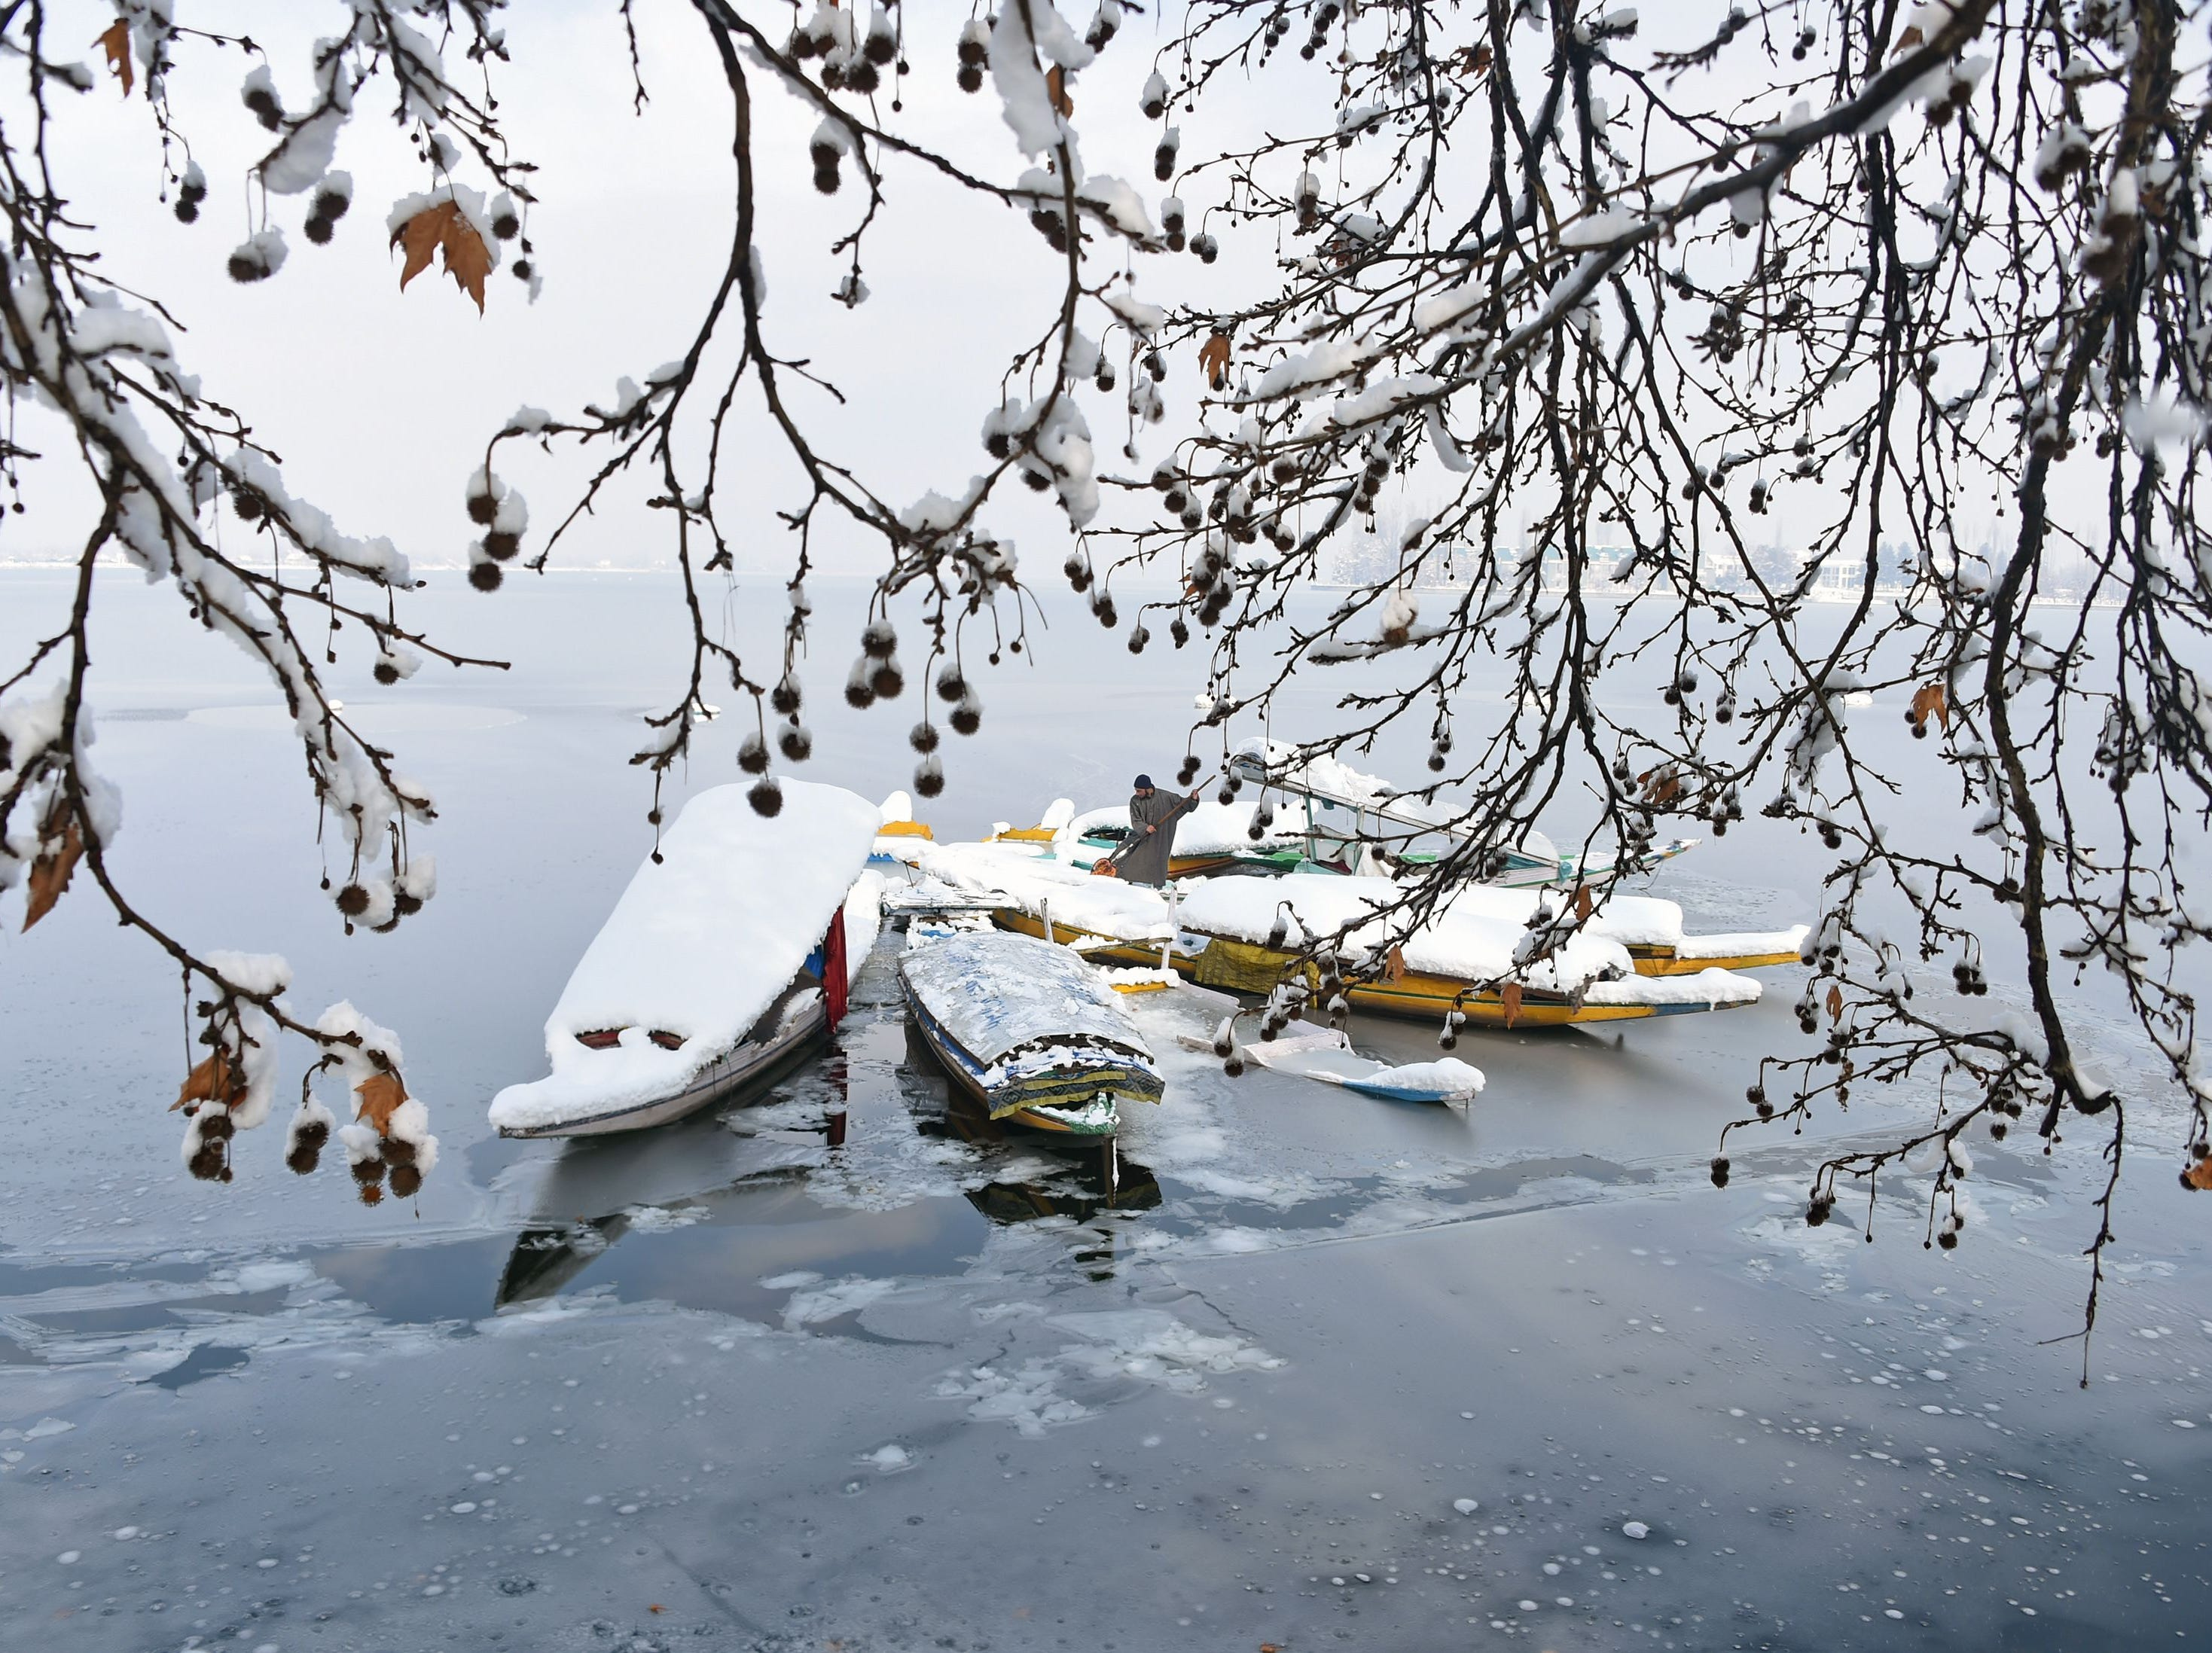 A Kashmiri boatman clears snow from Shikara boats near a frozen portion of Dal Lake after a snowfall in Srinagar on Jan. 5, 2019. Kashmir's road links with the rest of India were cut off as heavy snowfall closed the Jammu-Srinagar national highway.